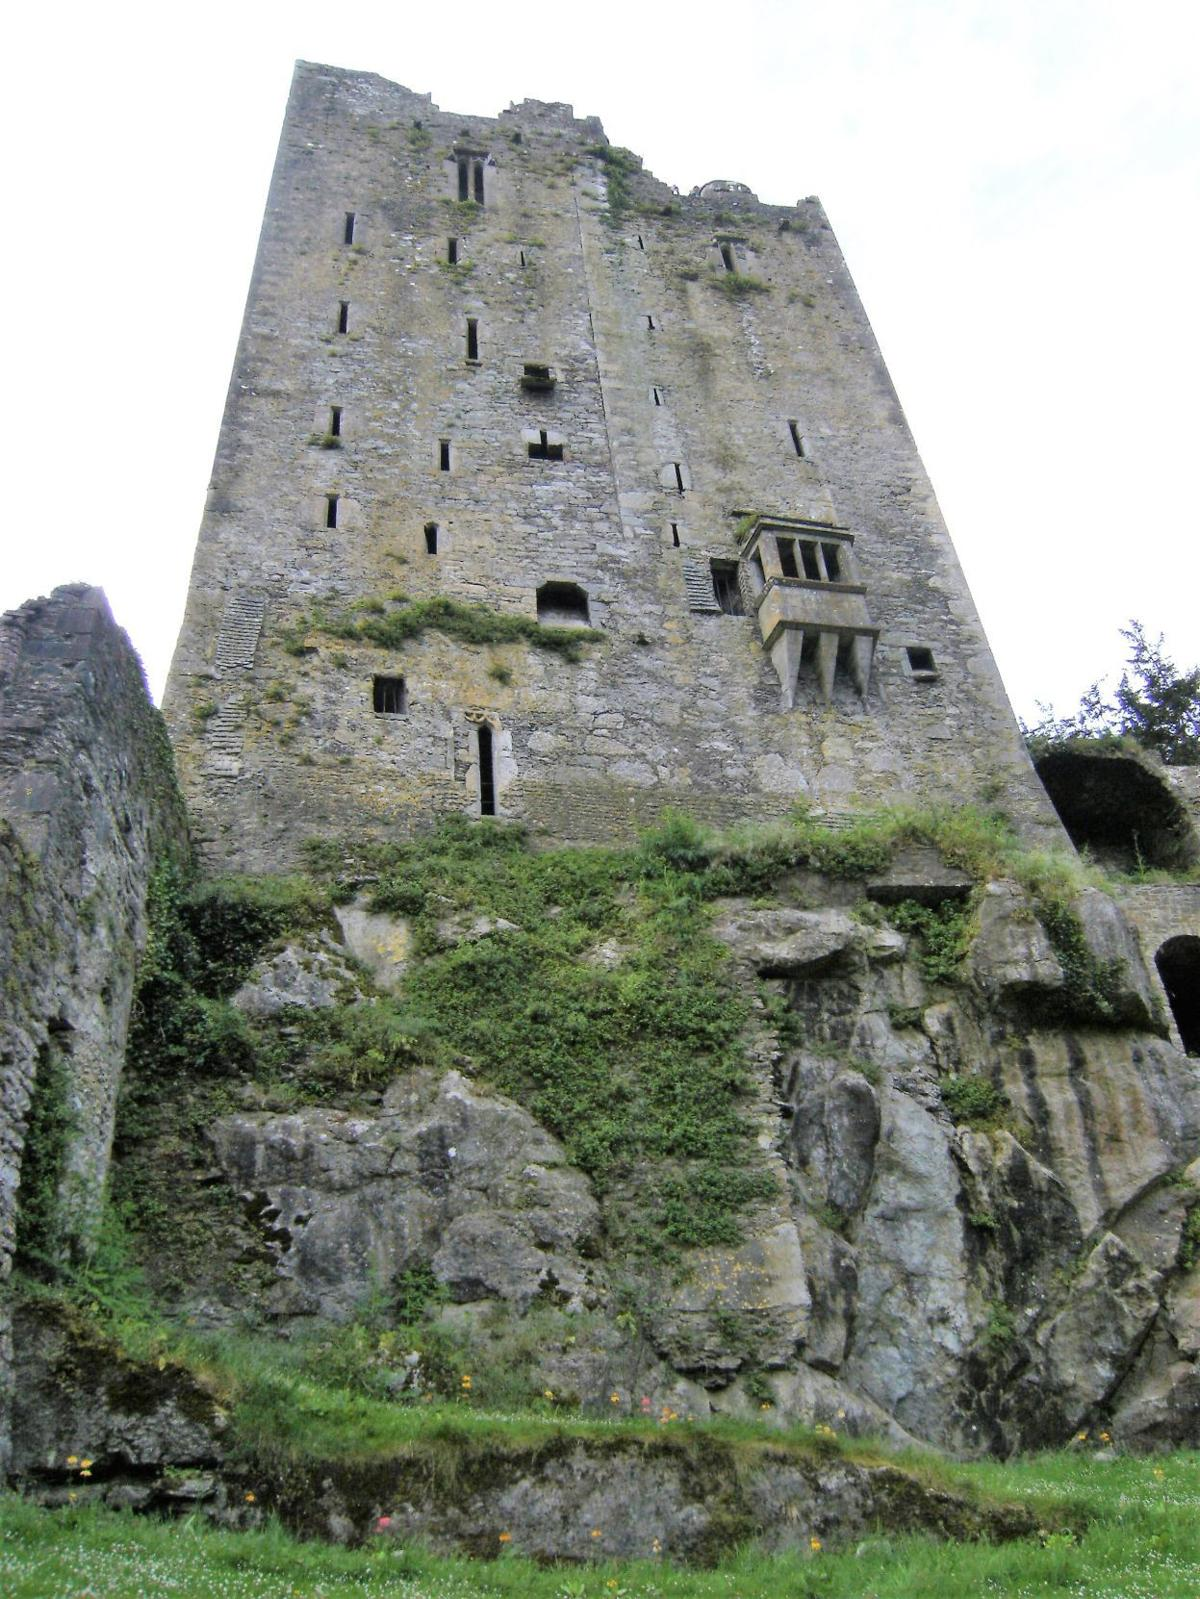 The Blarney Castle in Northern Ireland